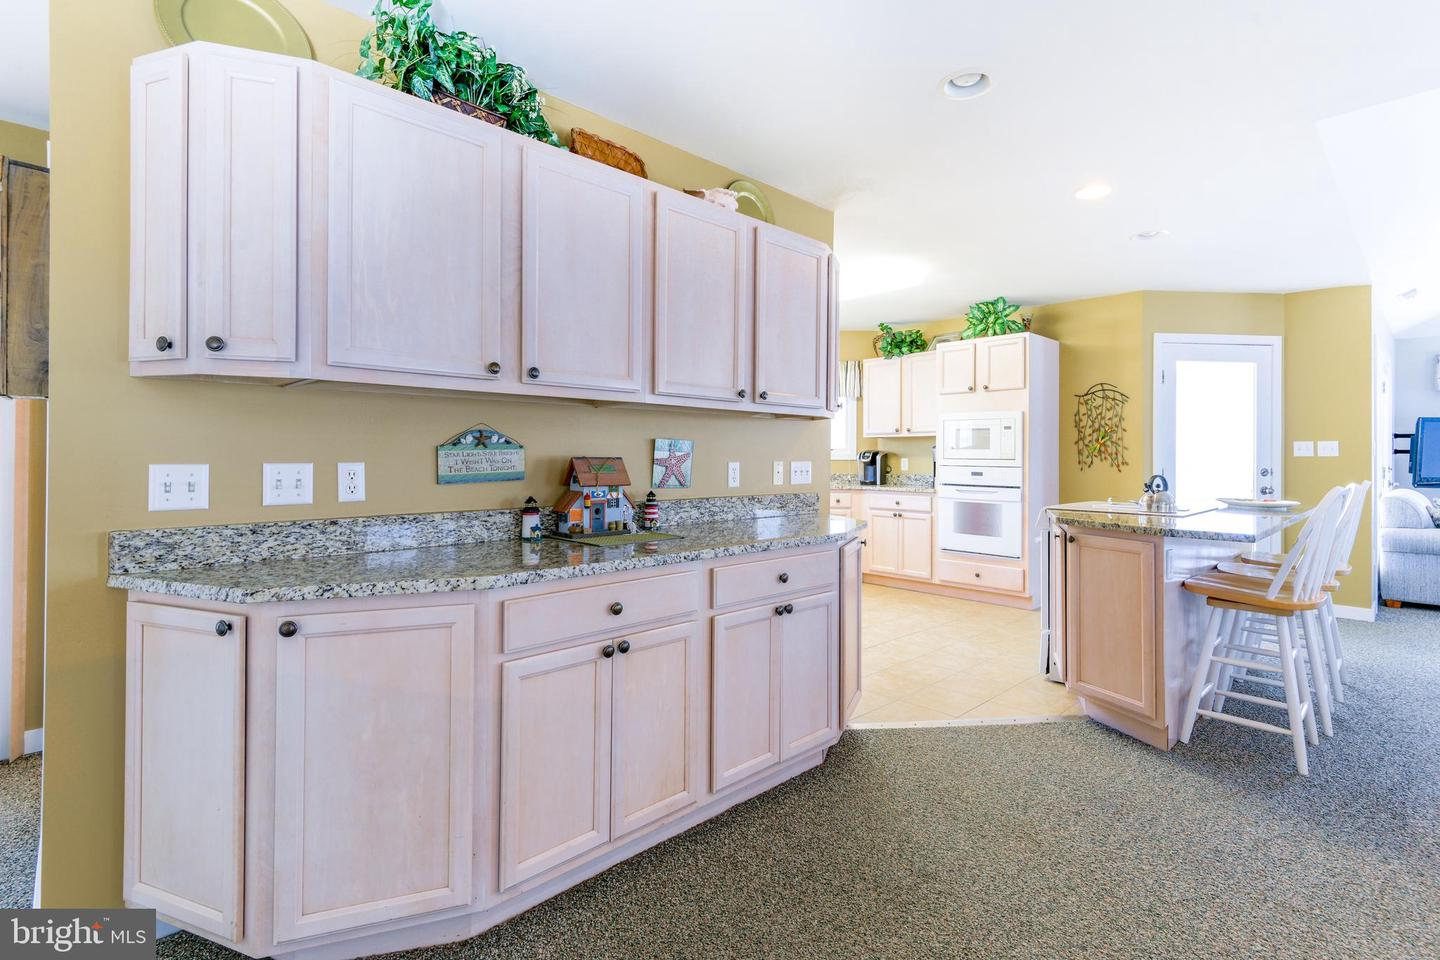 DESU140752-301729560636-2019-05-20-15-11-27 7 Olive Ave | Rehoboth Beach, DE Real Estate For Sale | MLS# Desu140752  - 1st Choice Properties